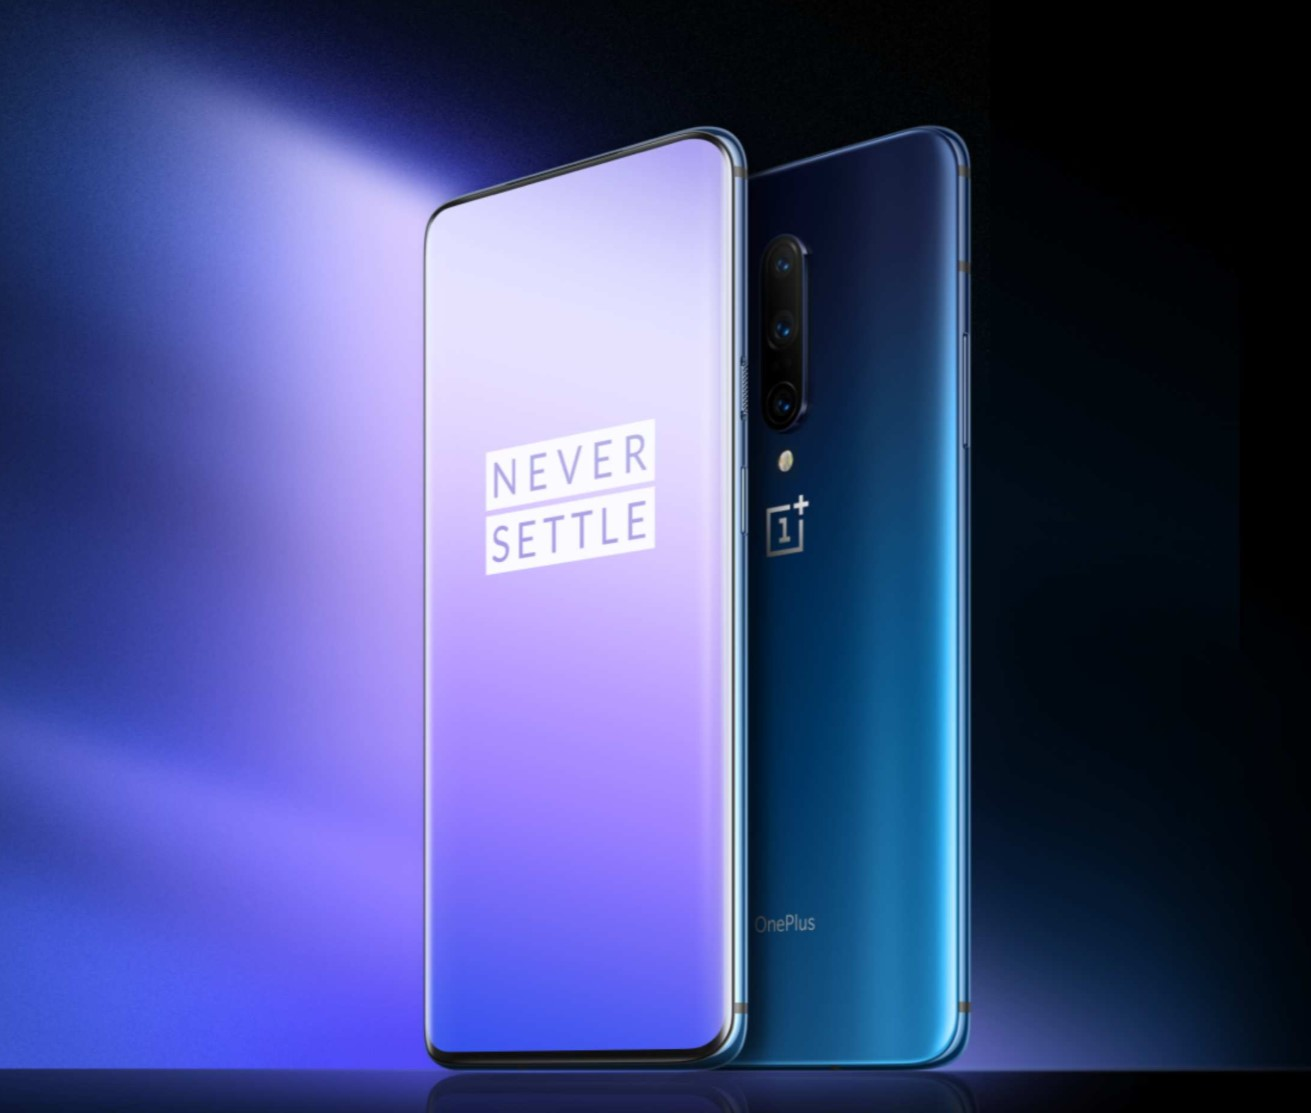 OnePlus 7, 7Pro, and 7T Pro receive new features in latest OxygenOS update - MSPoweruser